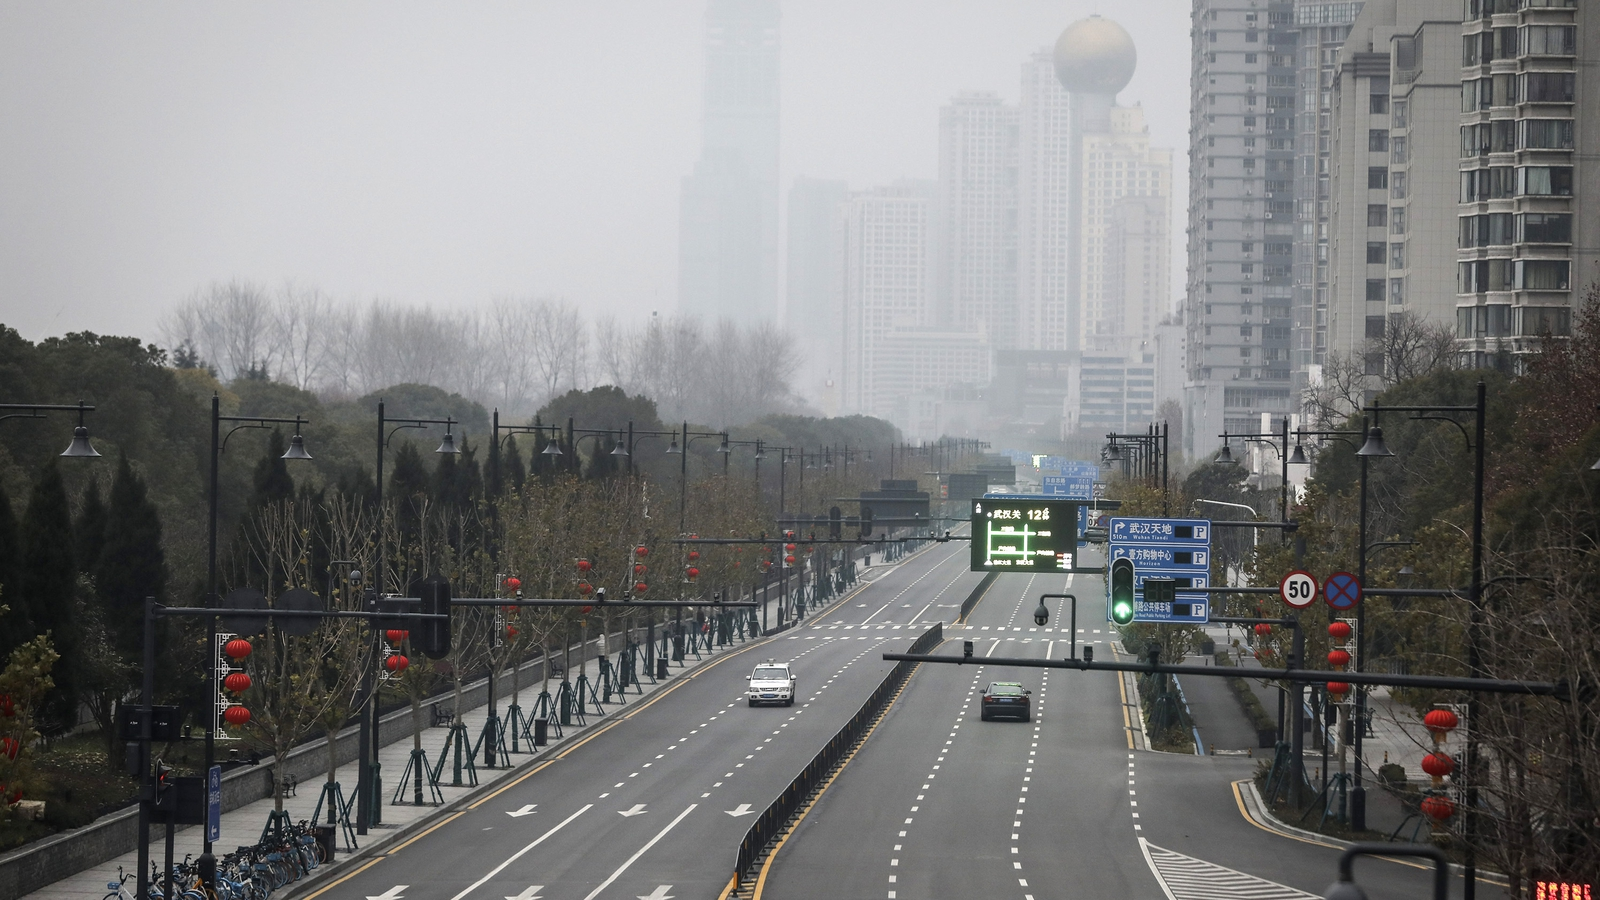 Image - Wuhan went into a full lockdown on 23 January 2020